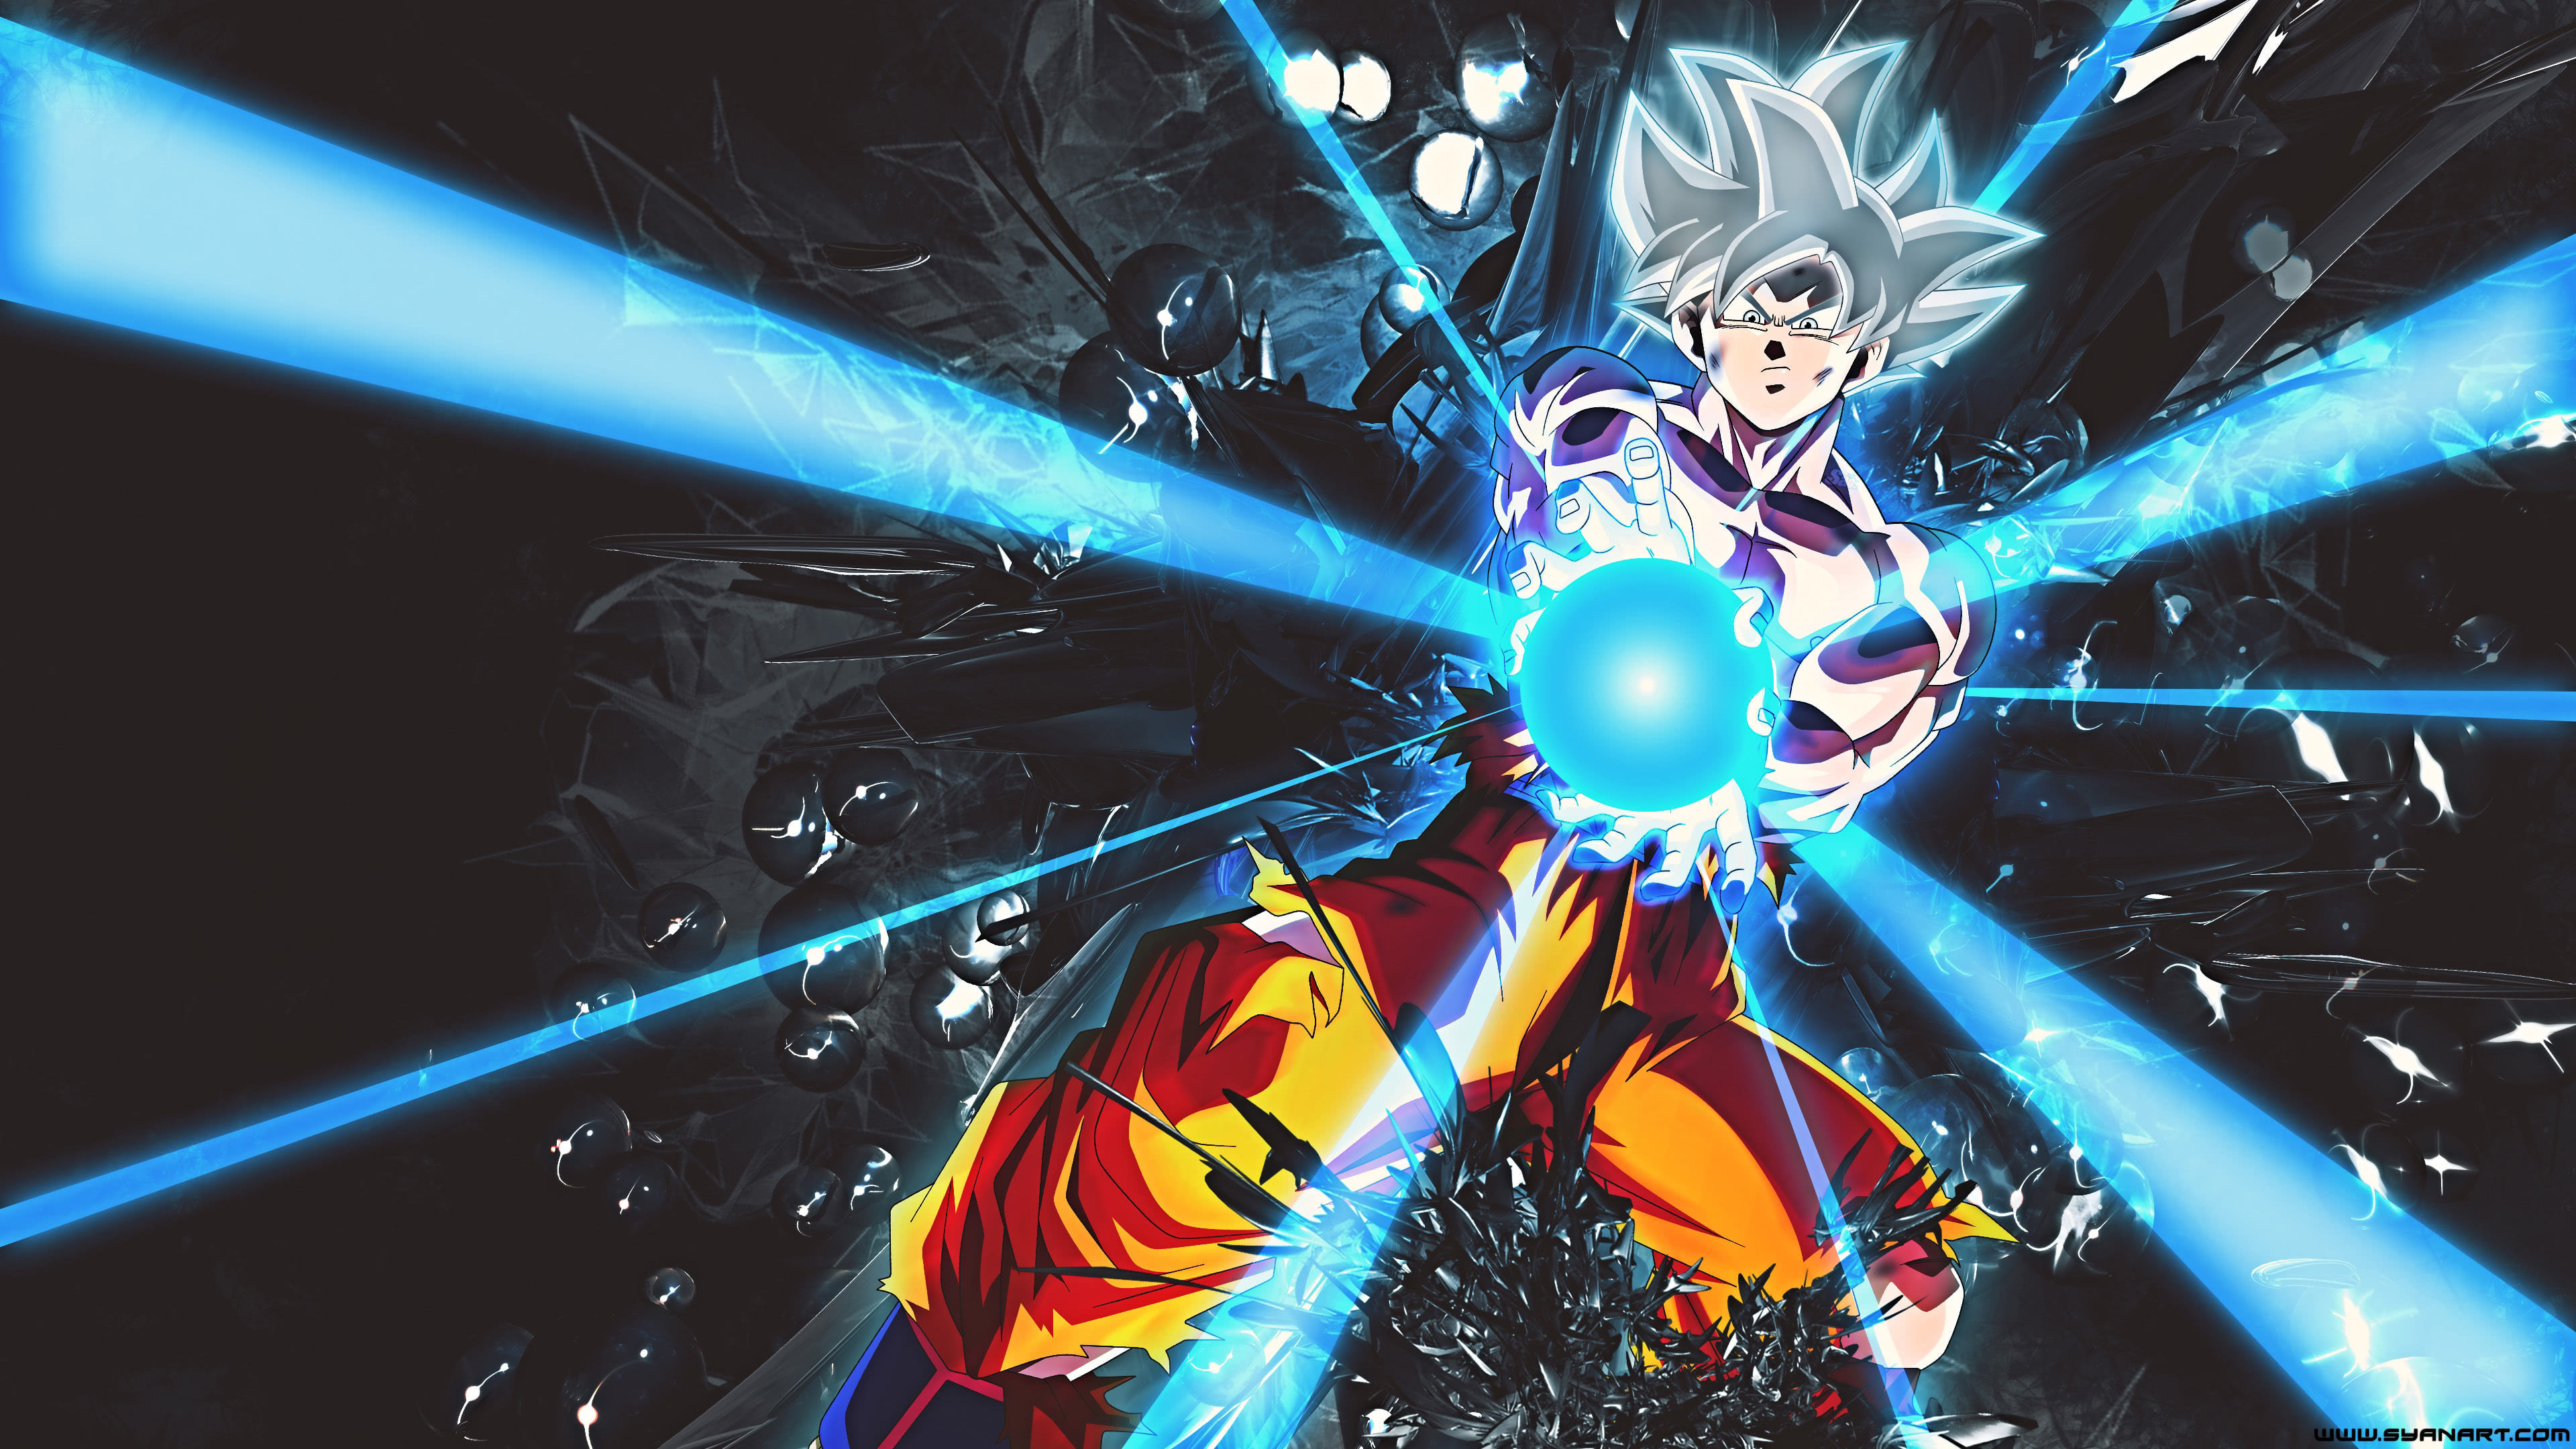 Goku Ultra Instinct Wallpaper 1080p: Dragon Ball Super Goku Ultra Instinct UHD 4K Wallpaper